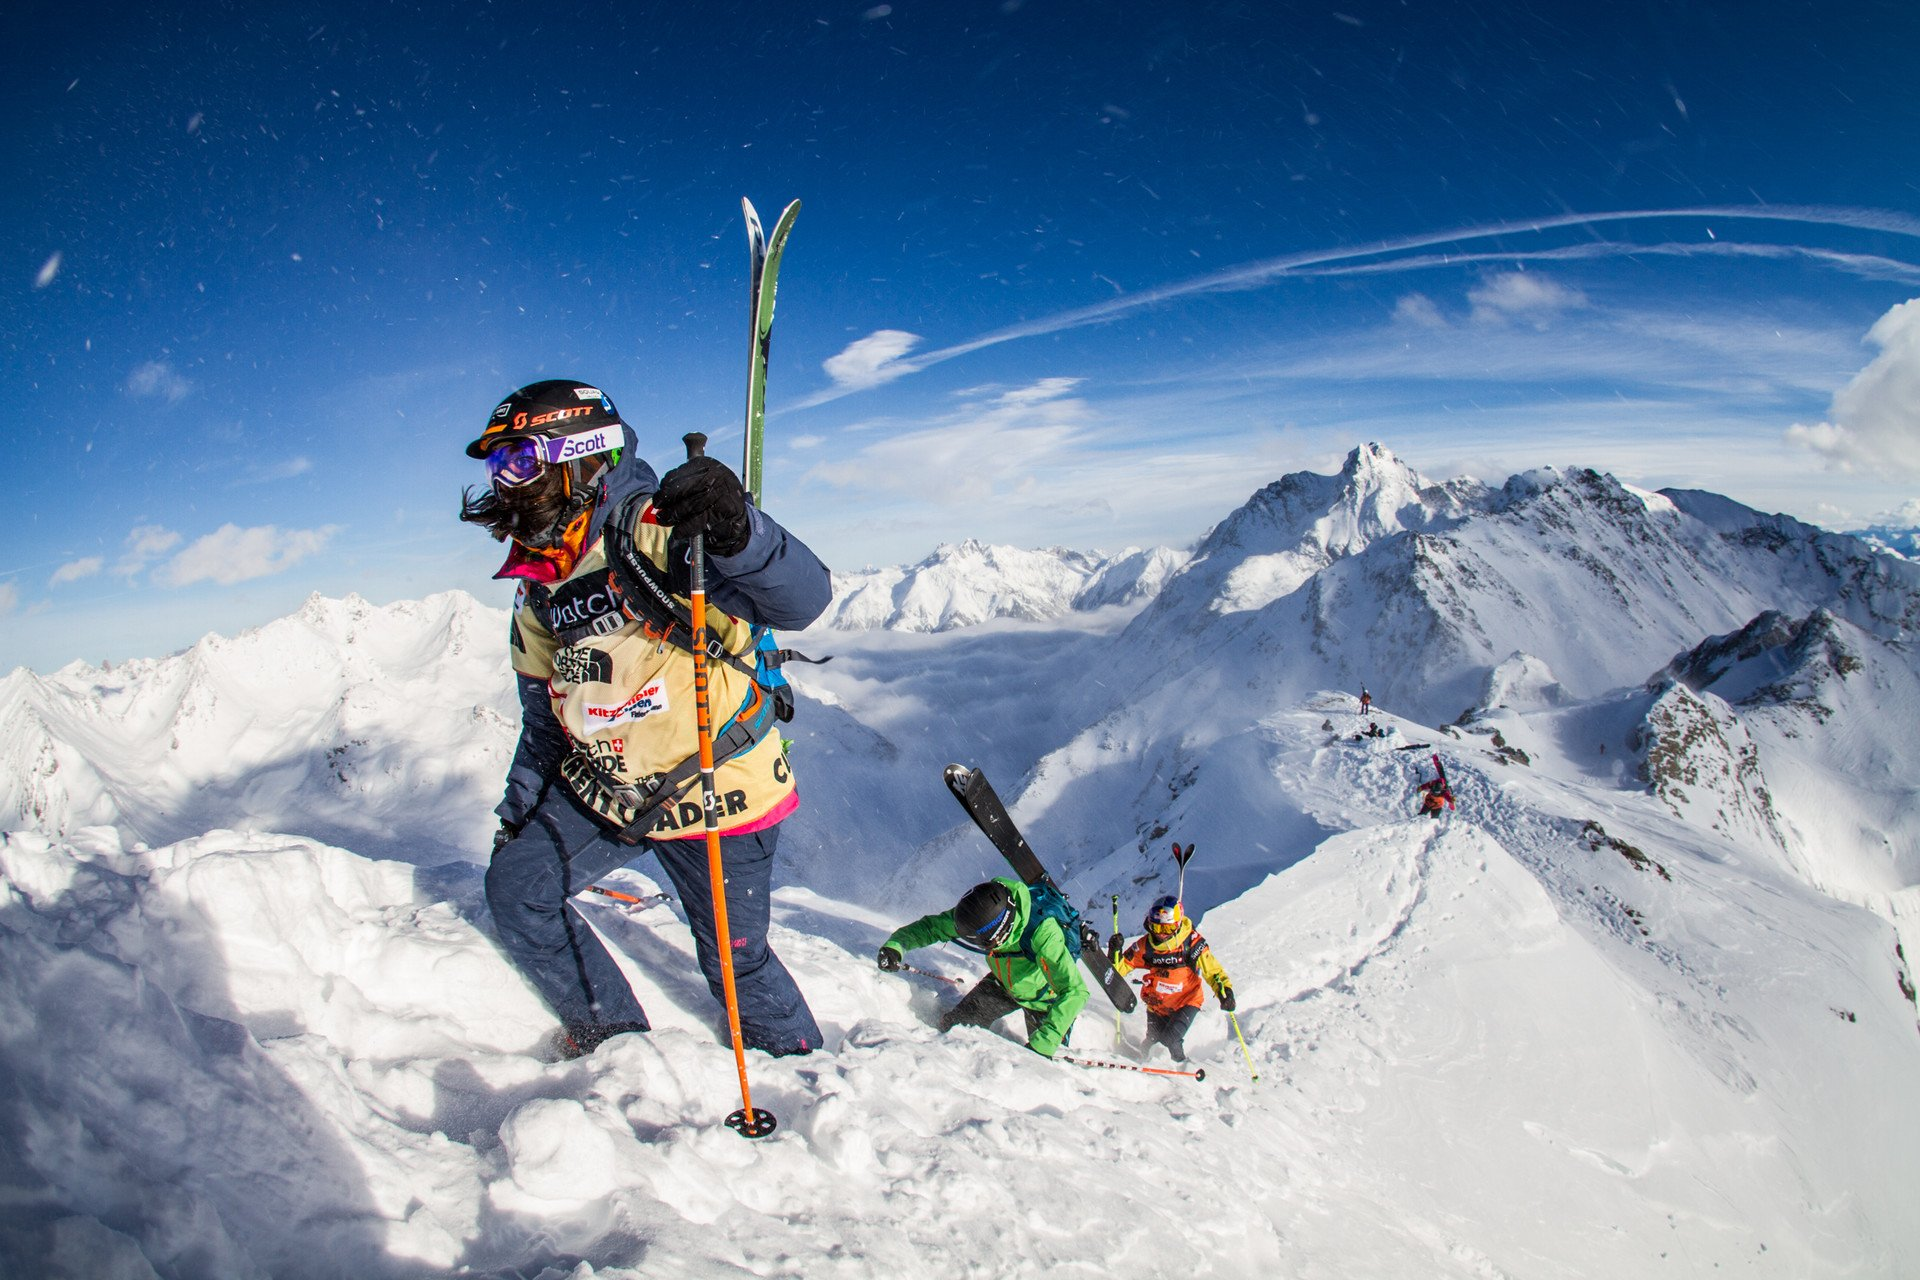 Event – Swatch Freeride World Tour 2016: FWT Proudly presents – die kühnsten Freeride-Profis der Welt